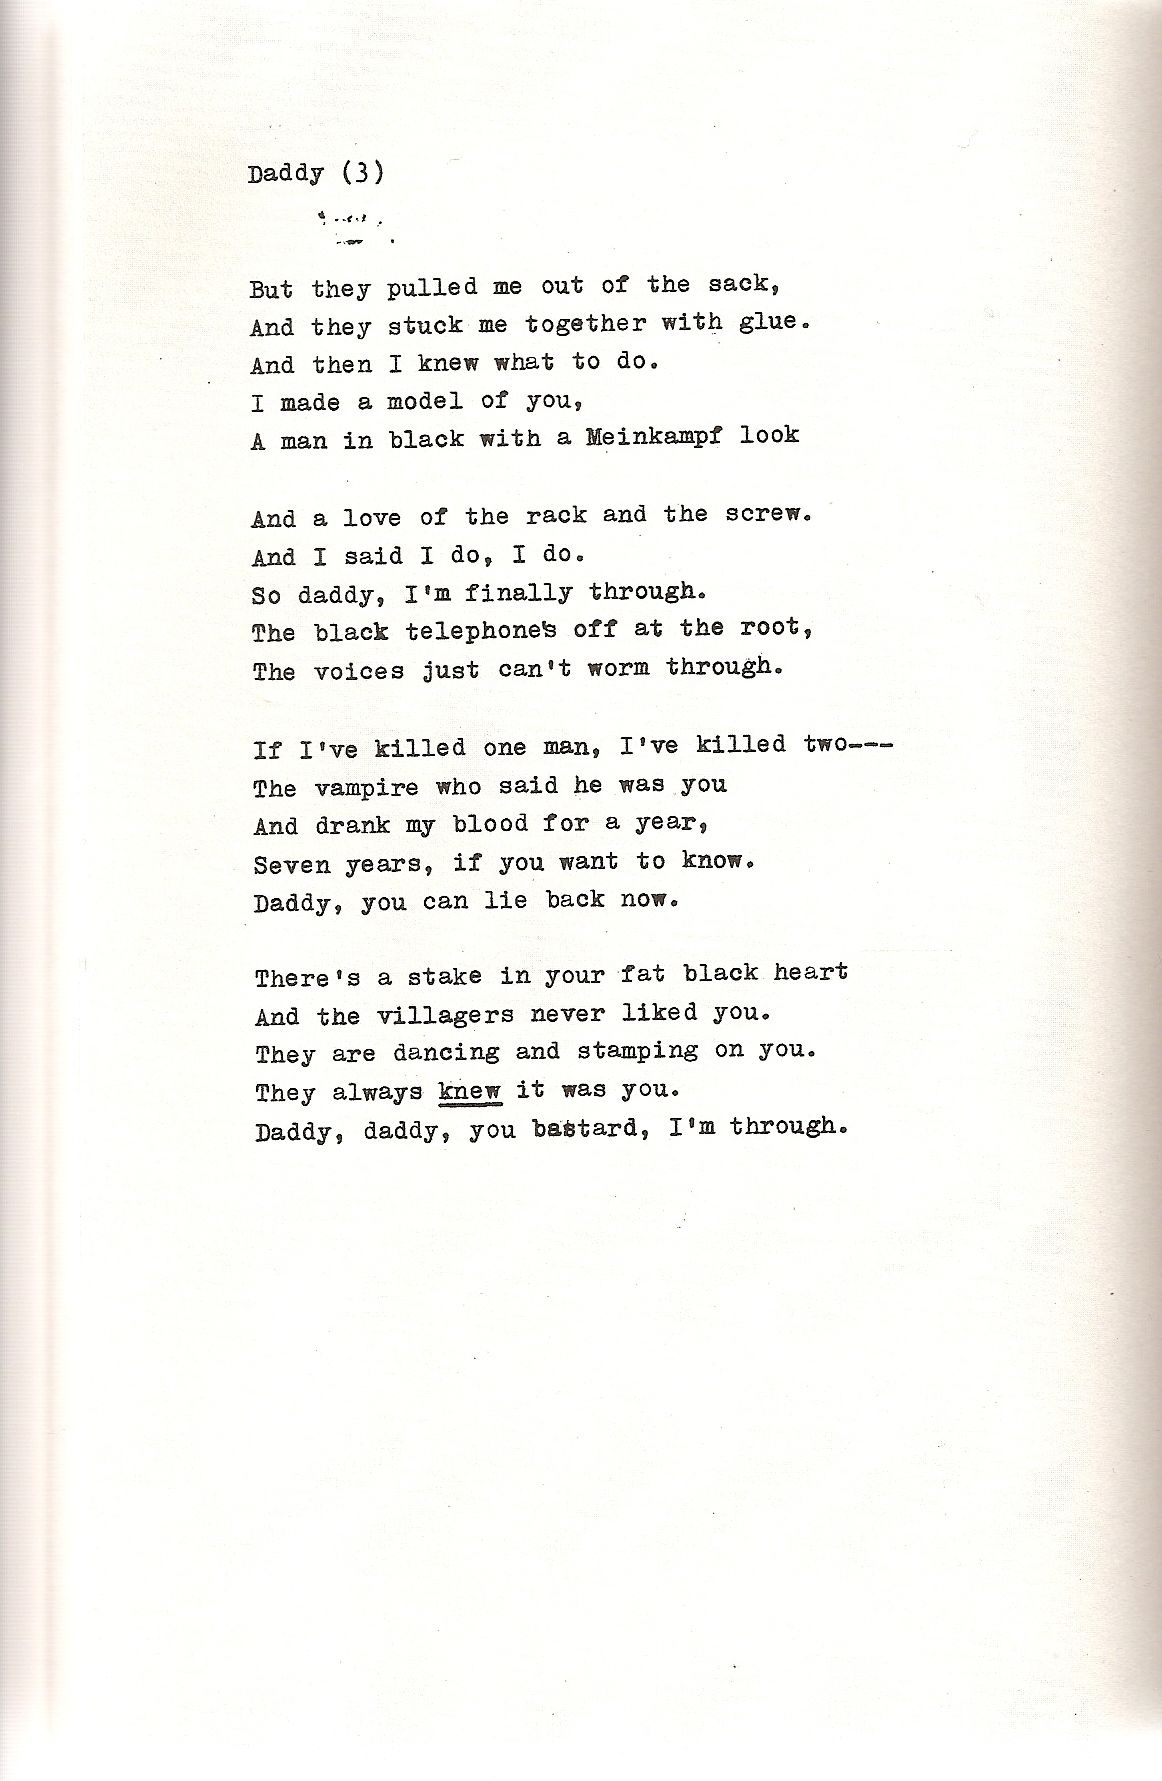 daddy poem sylvia plath